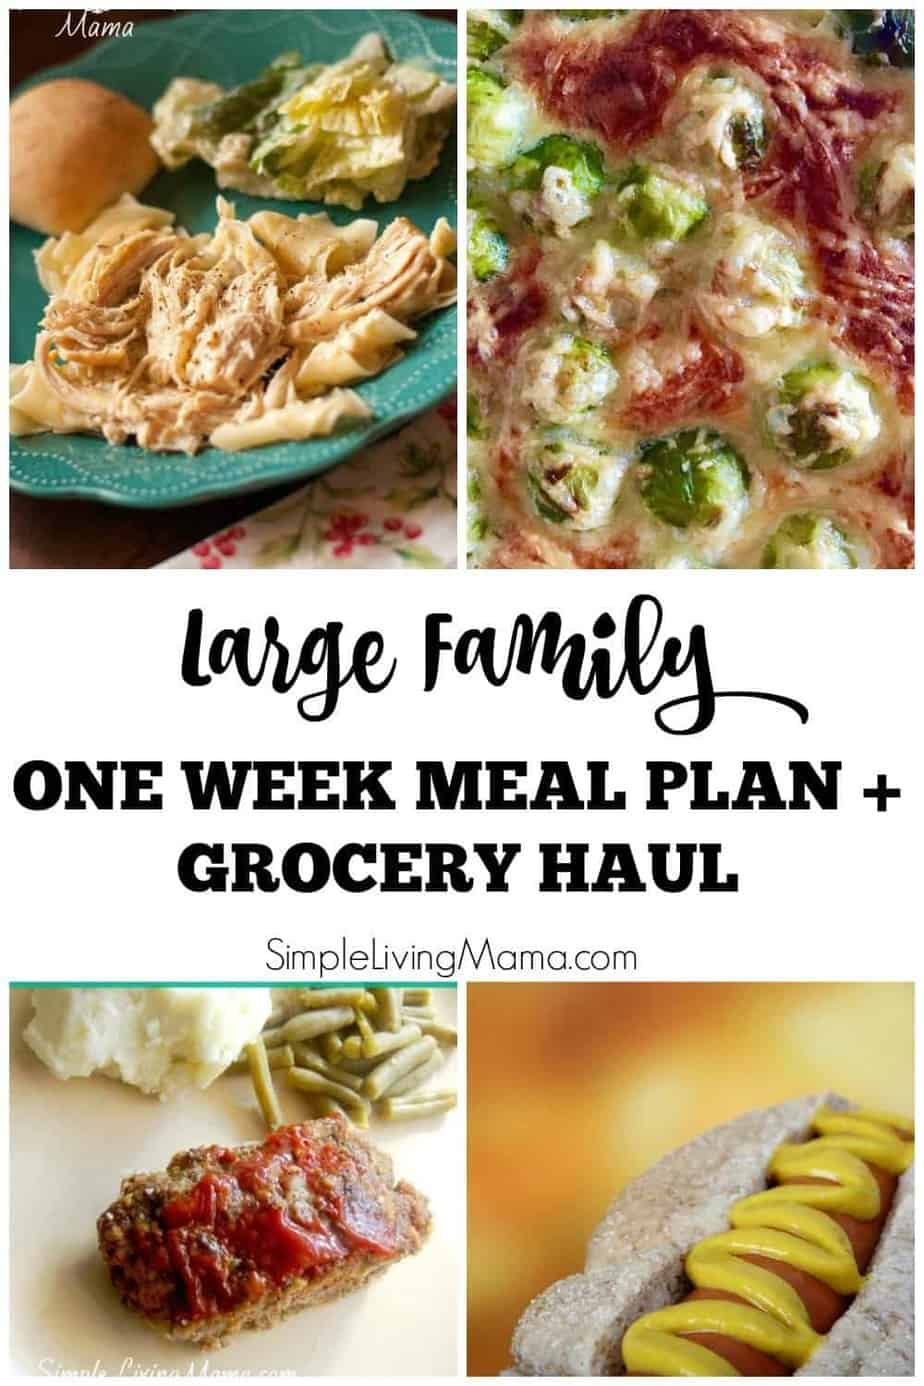 Walmart Grocery Haul and Meal Plan - Simple Living Mama